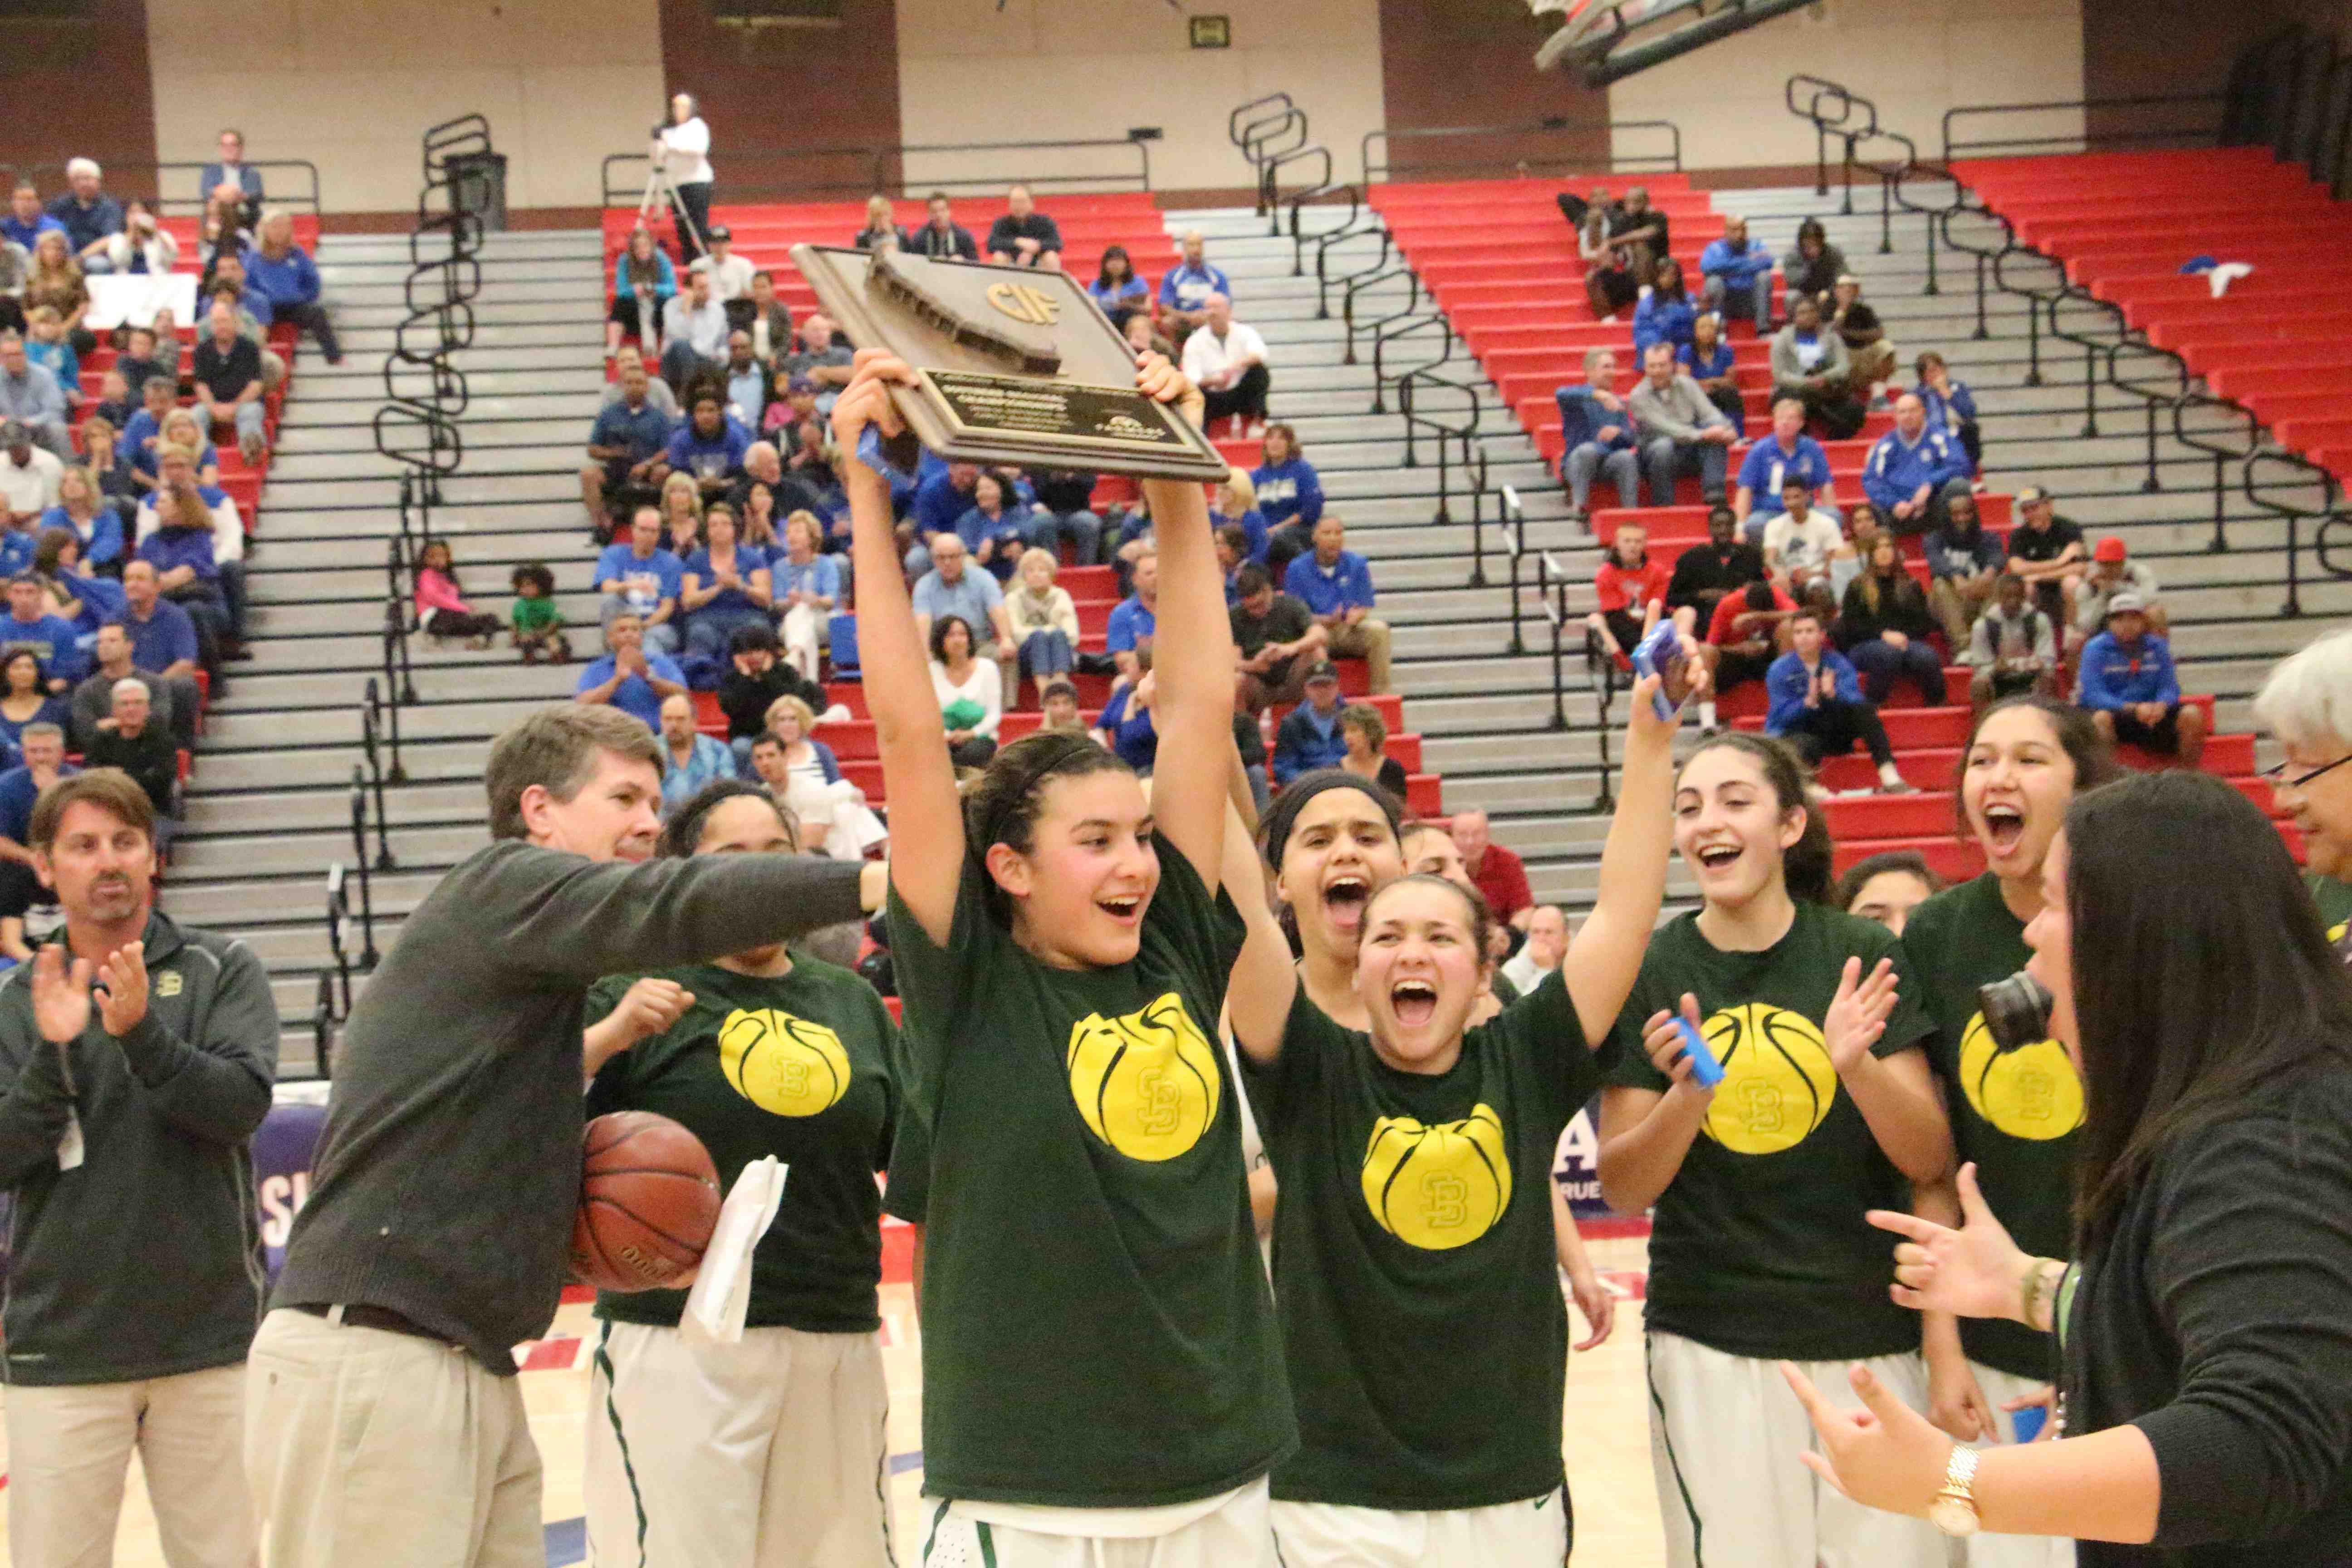 Amber Melgoza holds up the CIF Regional title plaque as her  Santa Barbara teammates celebrate after beating Santa Margarita, 58-48, in the Division 3 regional final.